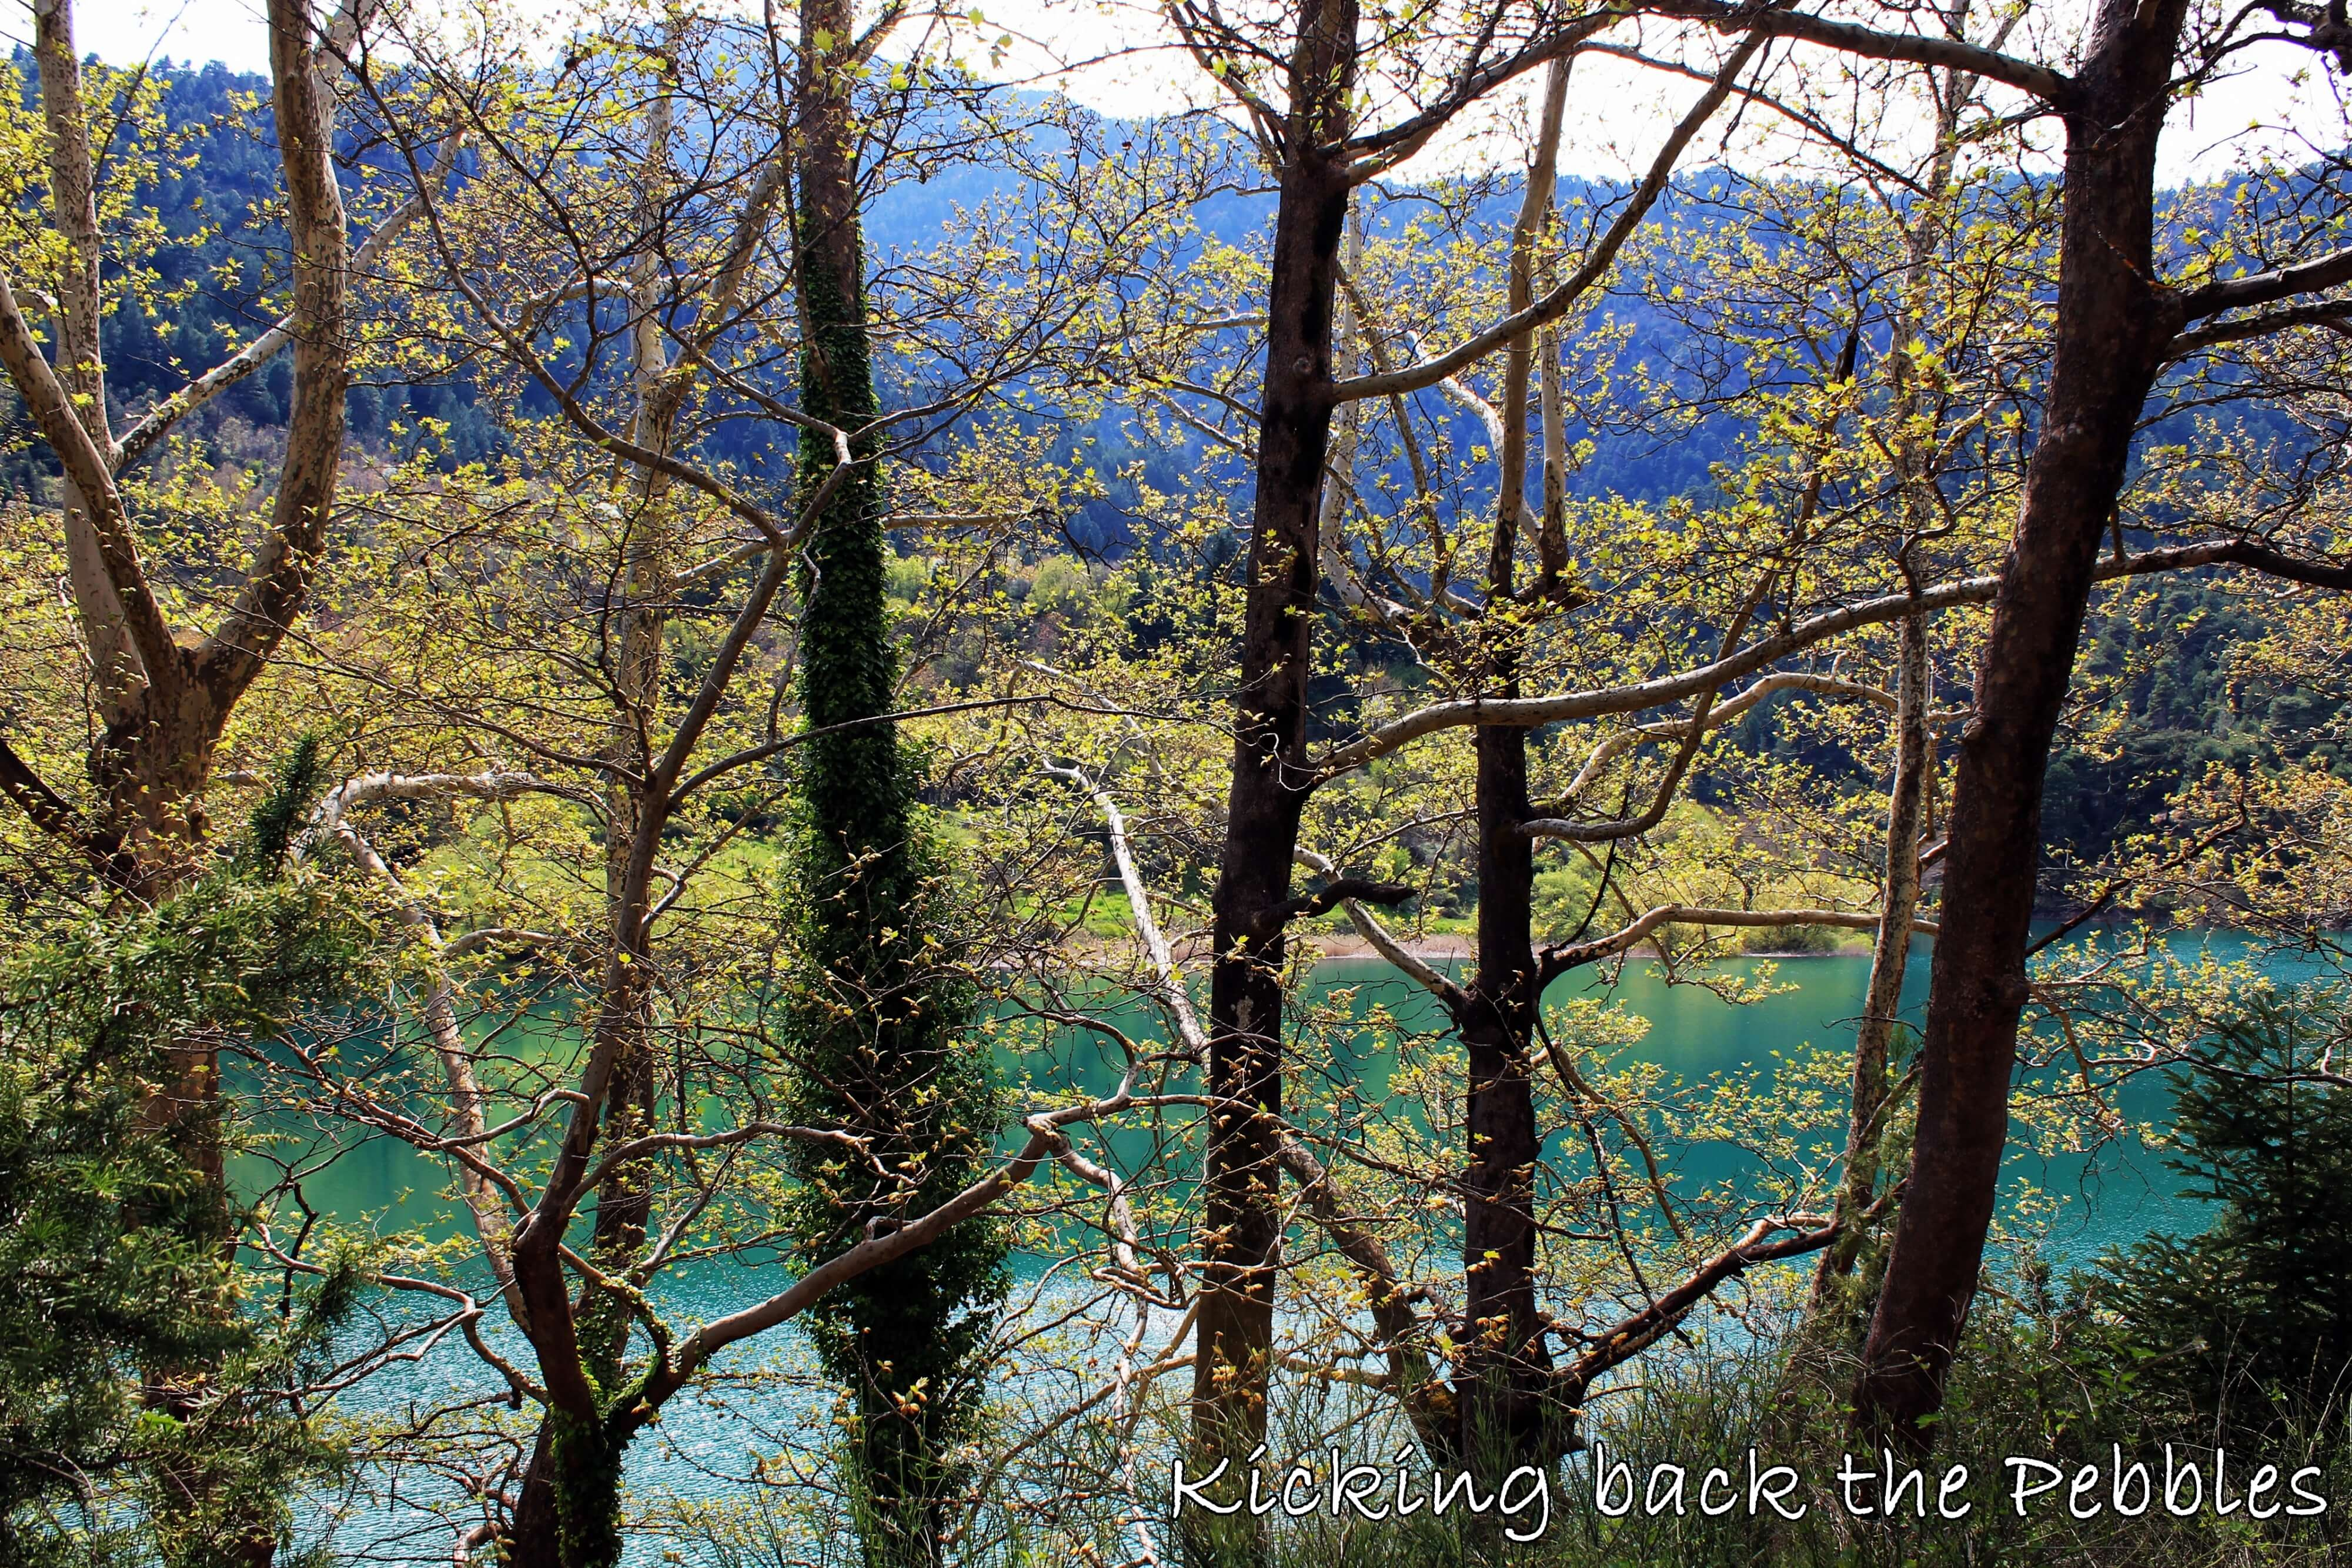 Lake Tsivlou-Chelmos-Achaea | Kicking Back the Pebbles